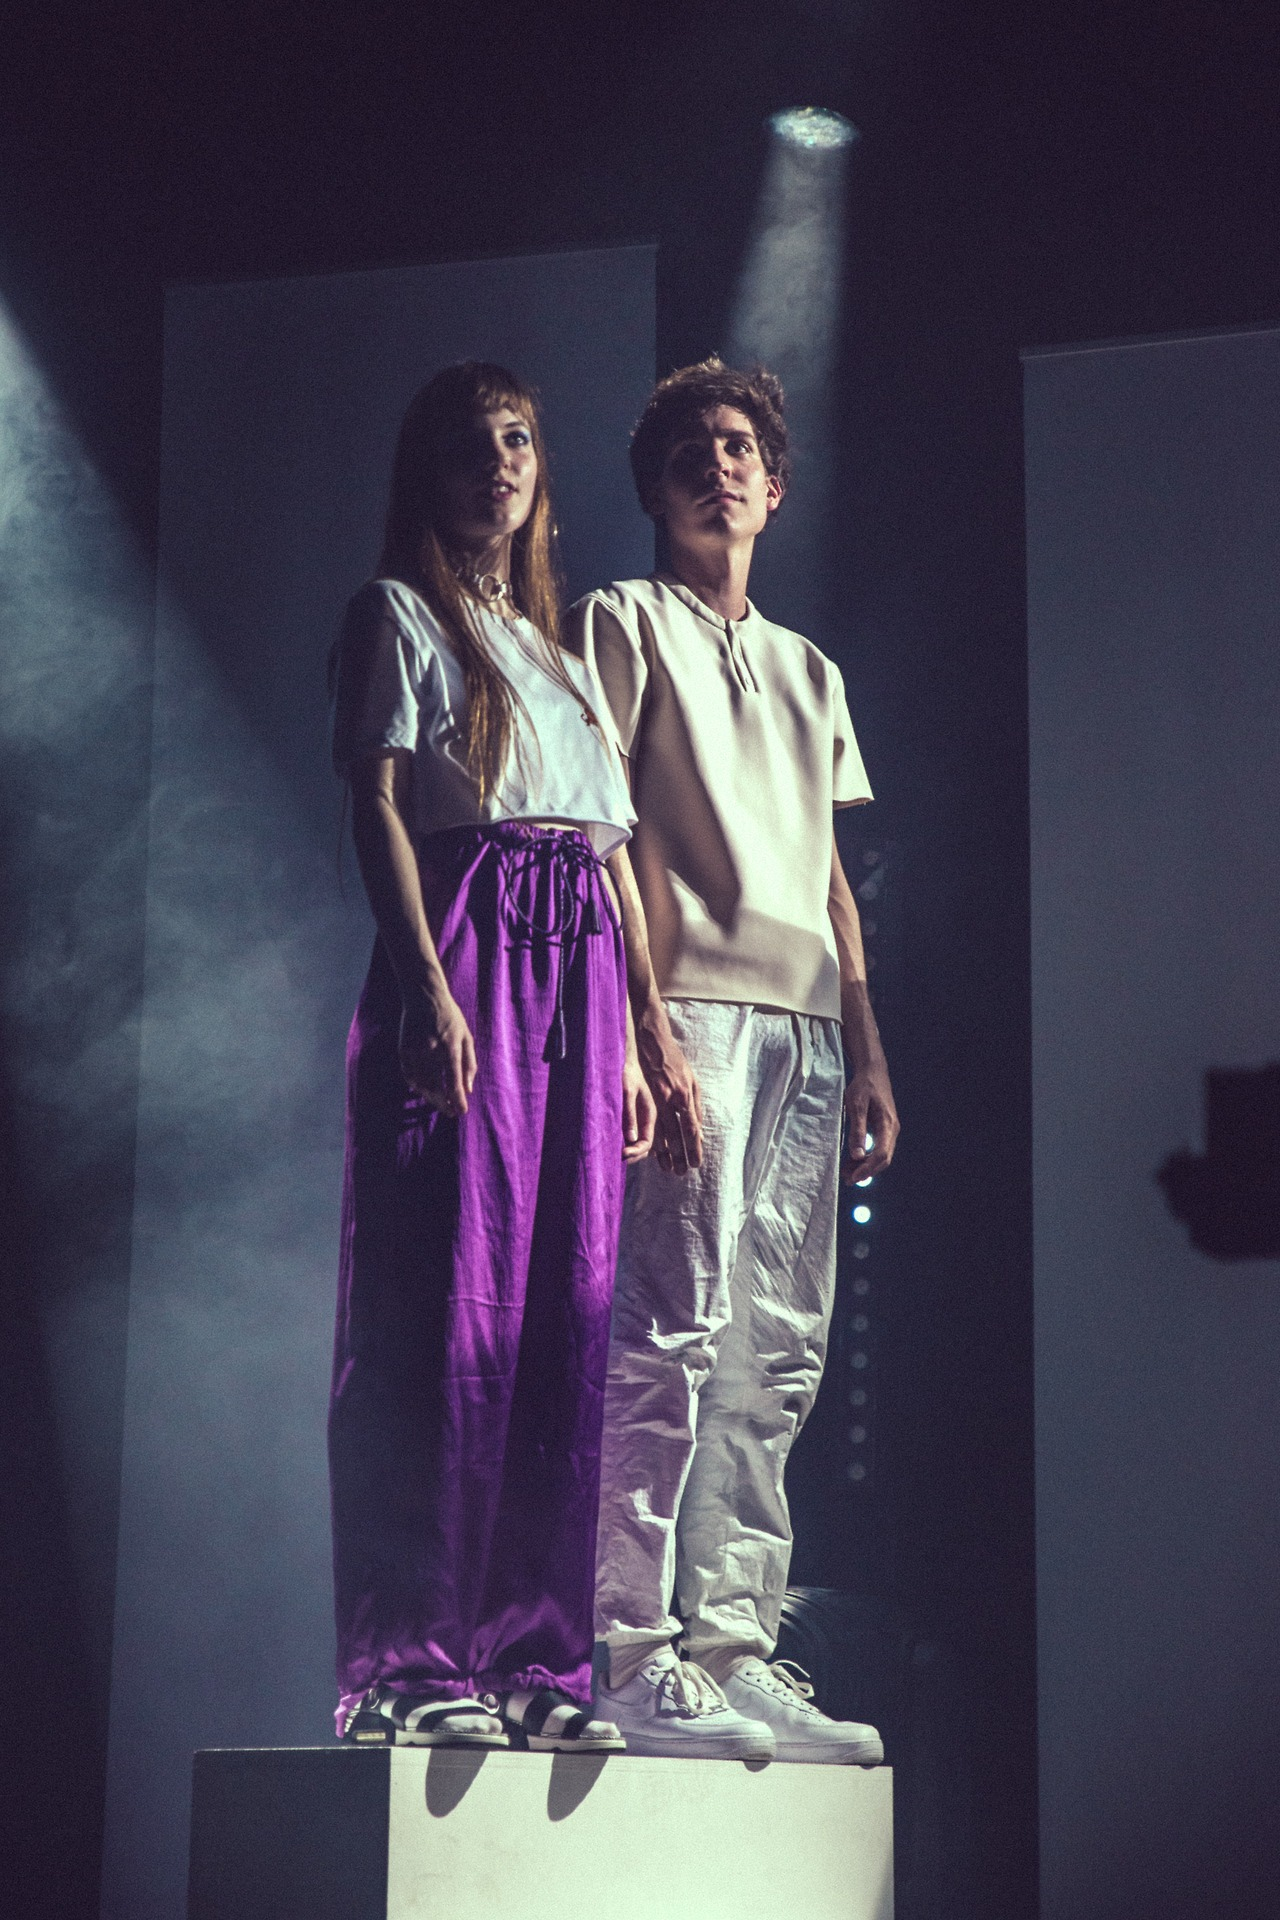 MARINE HENRION ® | Official Site | Futuristic fashion designer The Pirouettes at La Cigale